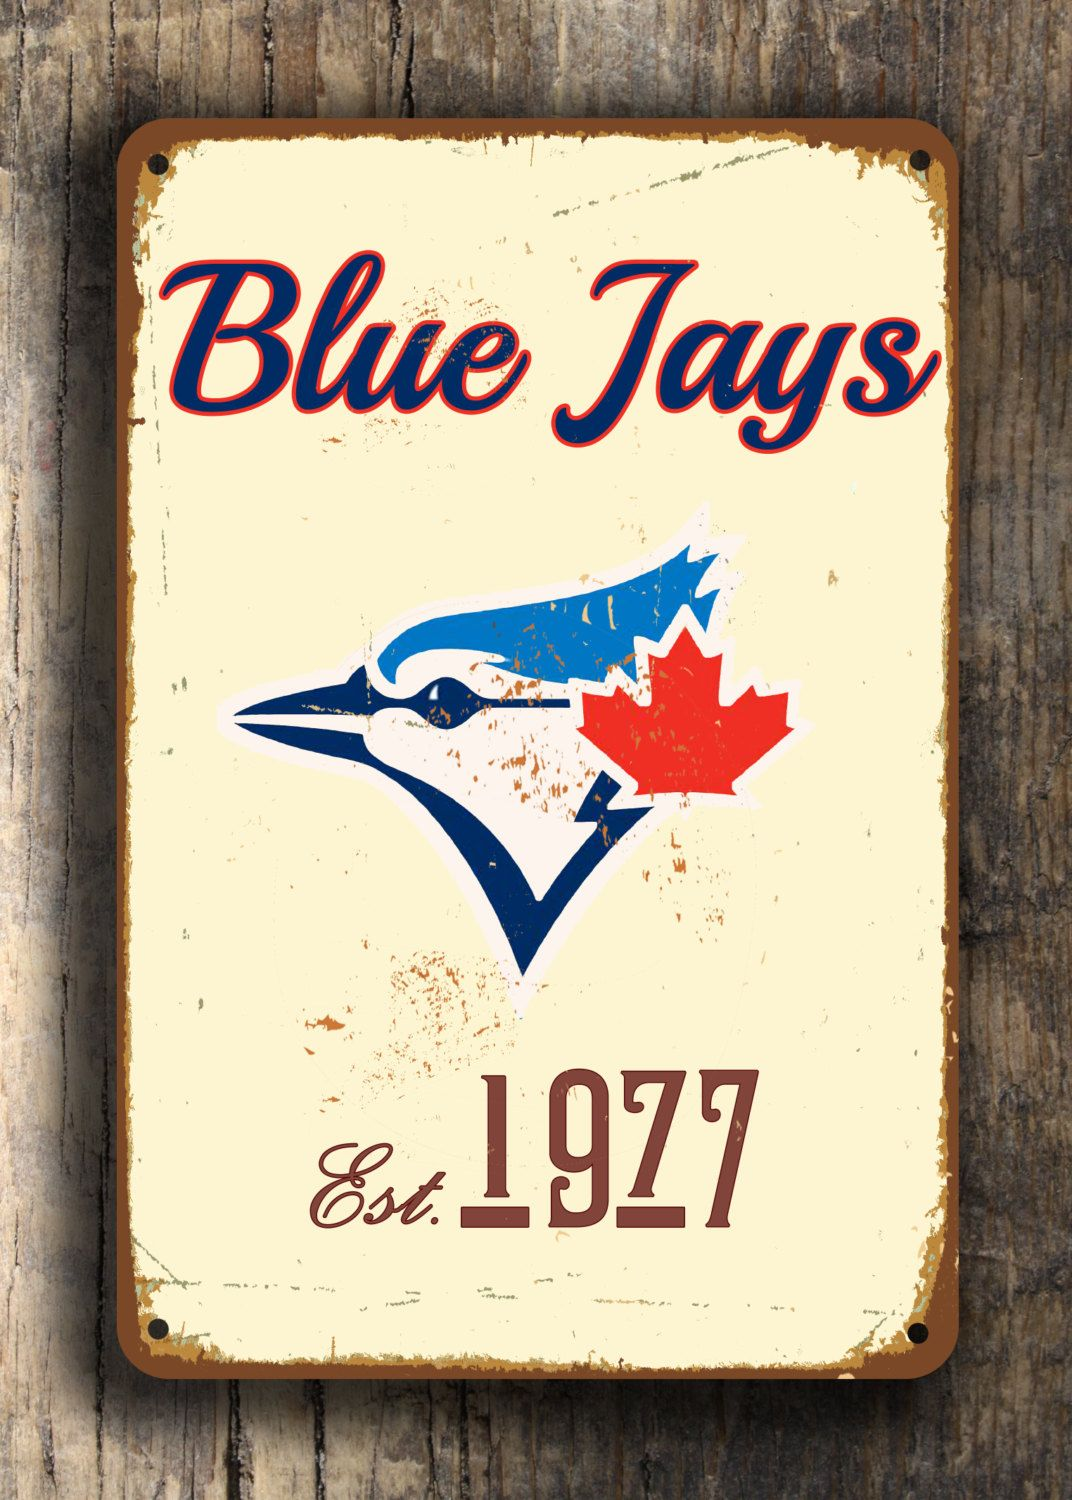 Vintage style Toronto BLUE JAYS Sign, Toronto Blue Jays Est. 1977 Composite Aluminum Toronto Blue Jays Sign team colors WORLDWIDE Shipping by FanZoneSigns on Etsy